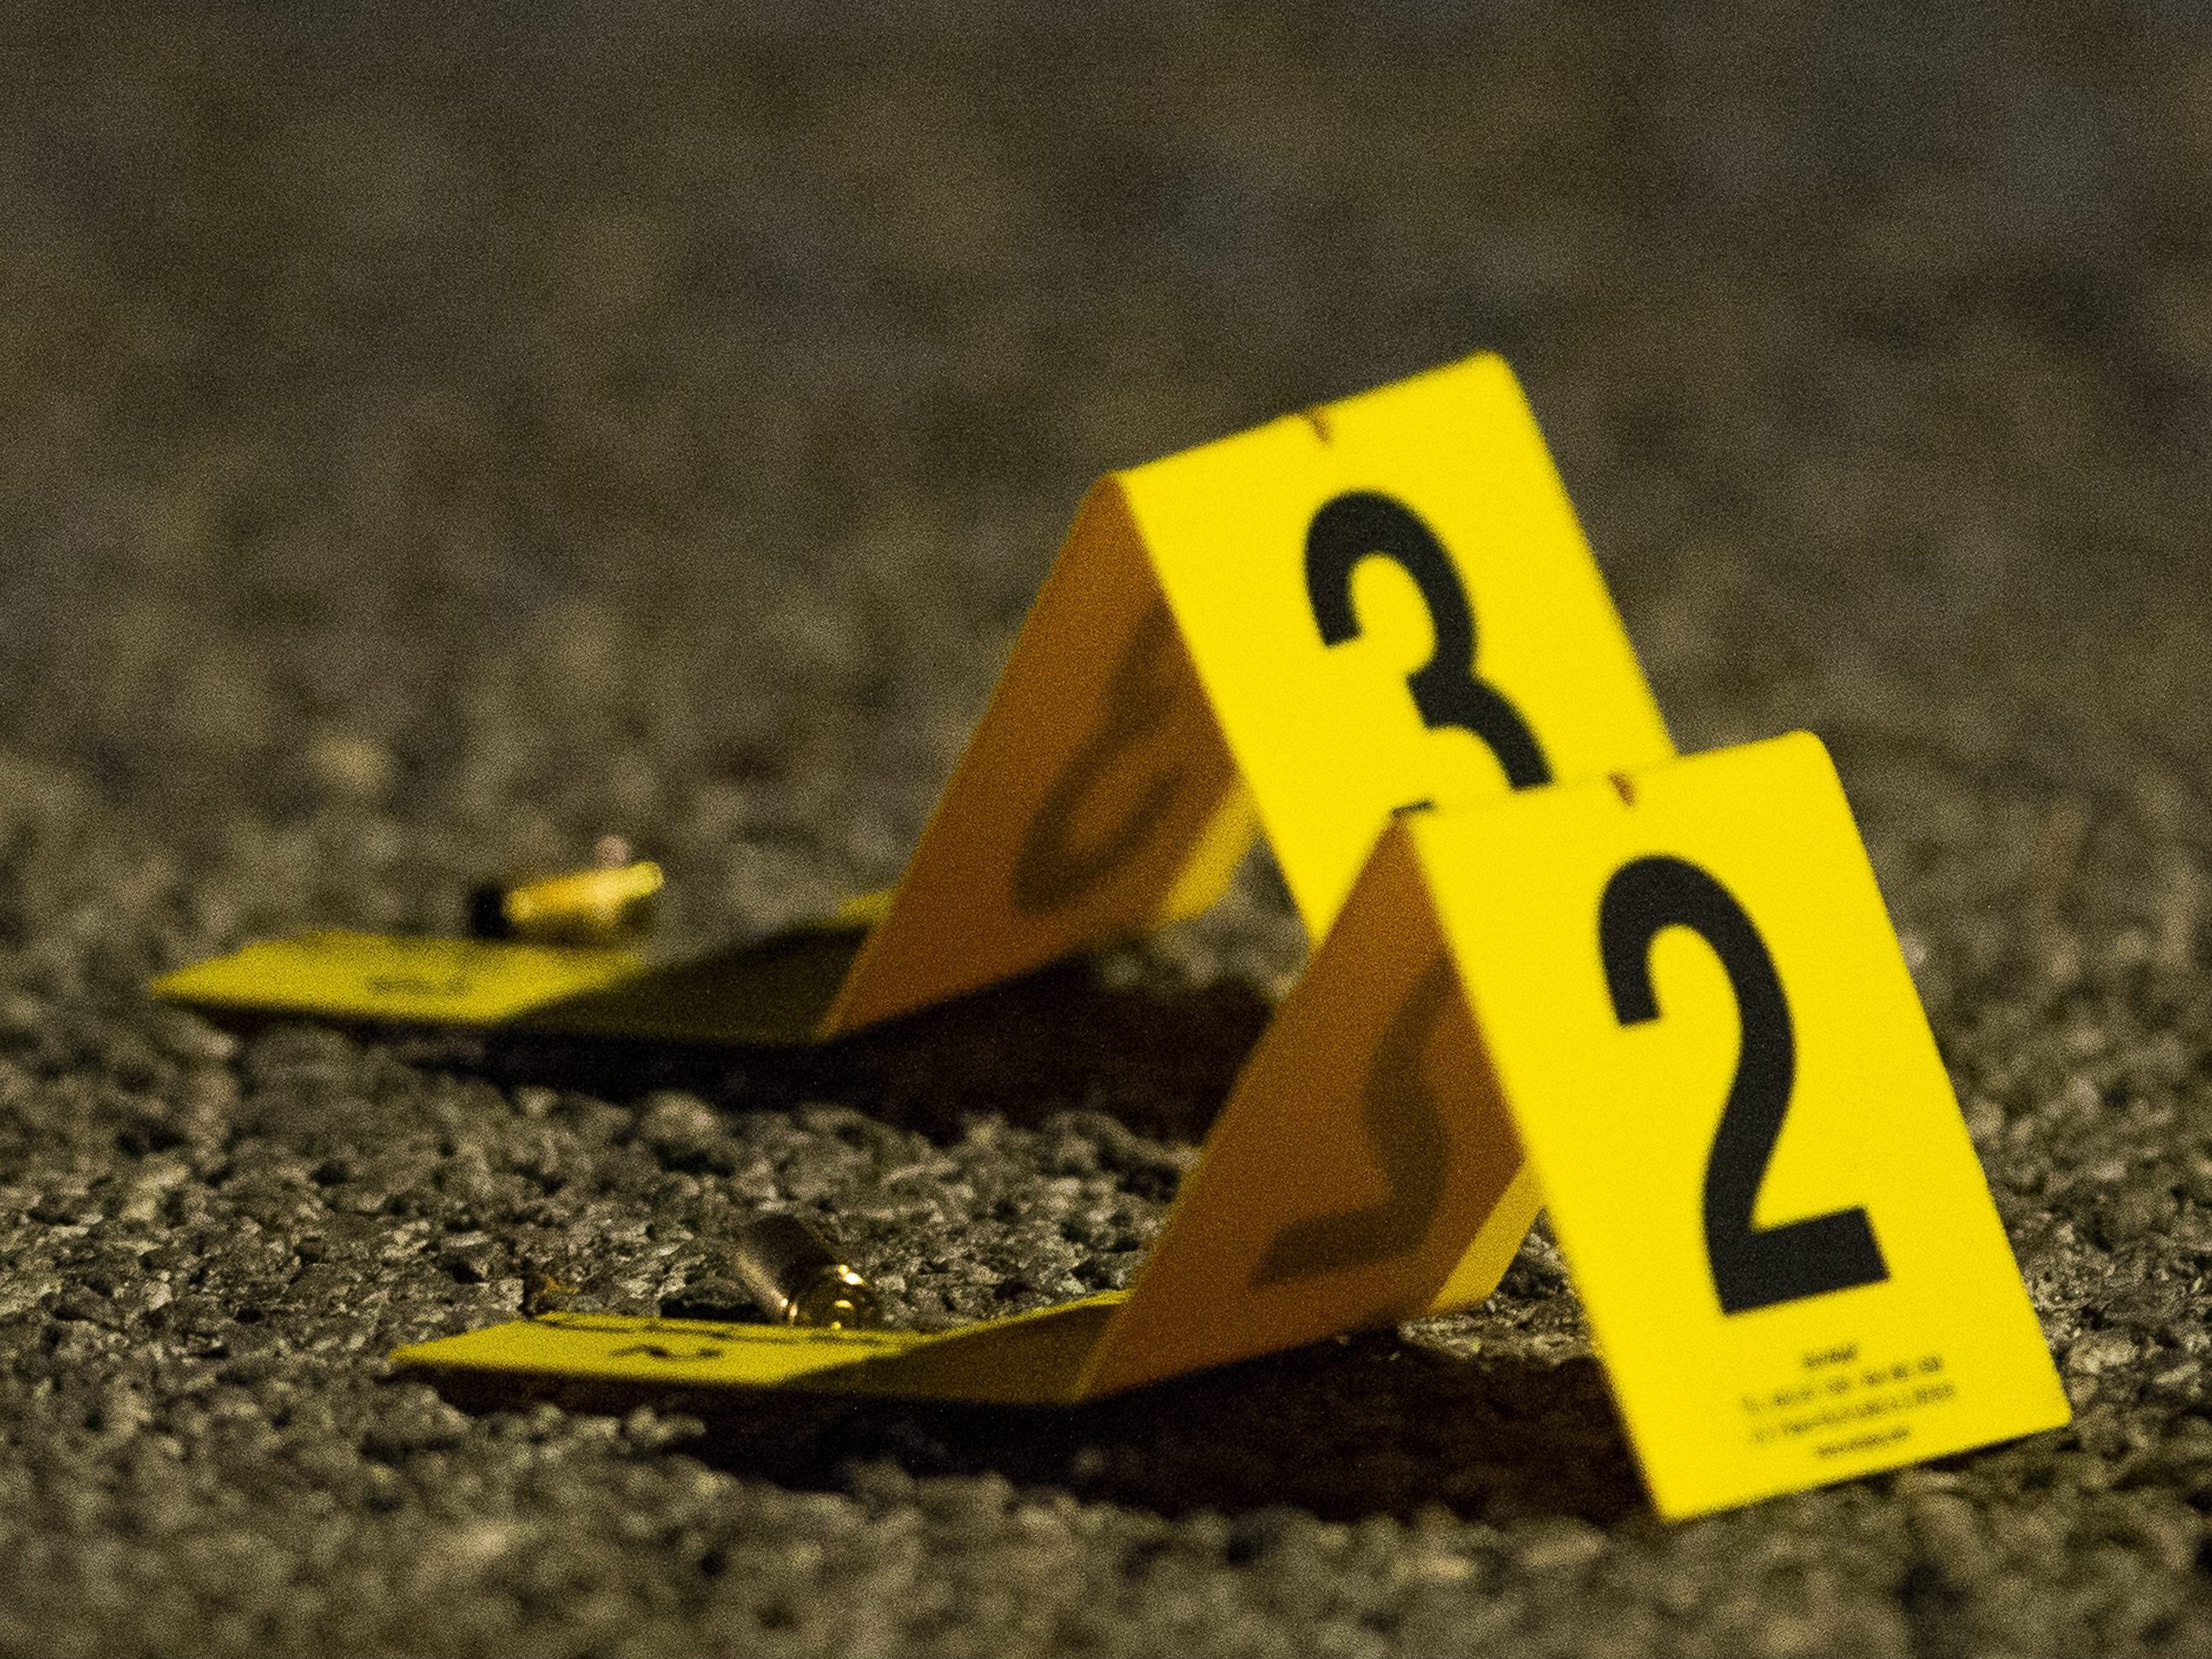 A group of people were shot in Gresham.